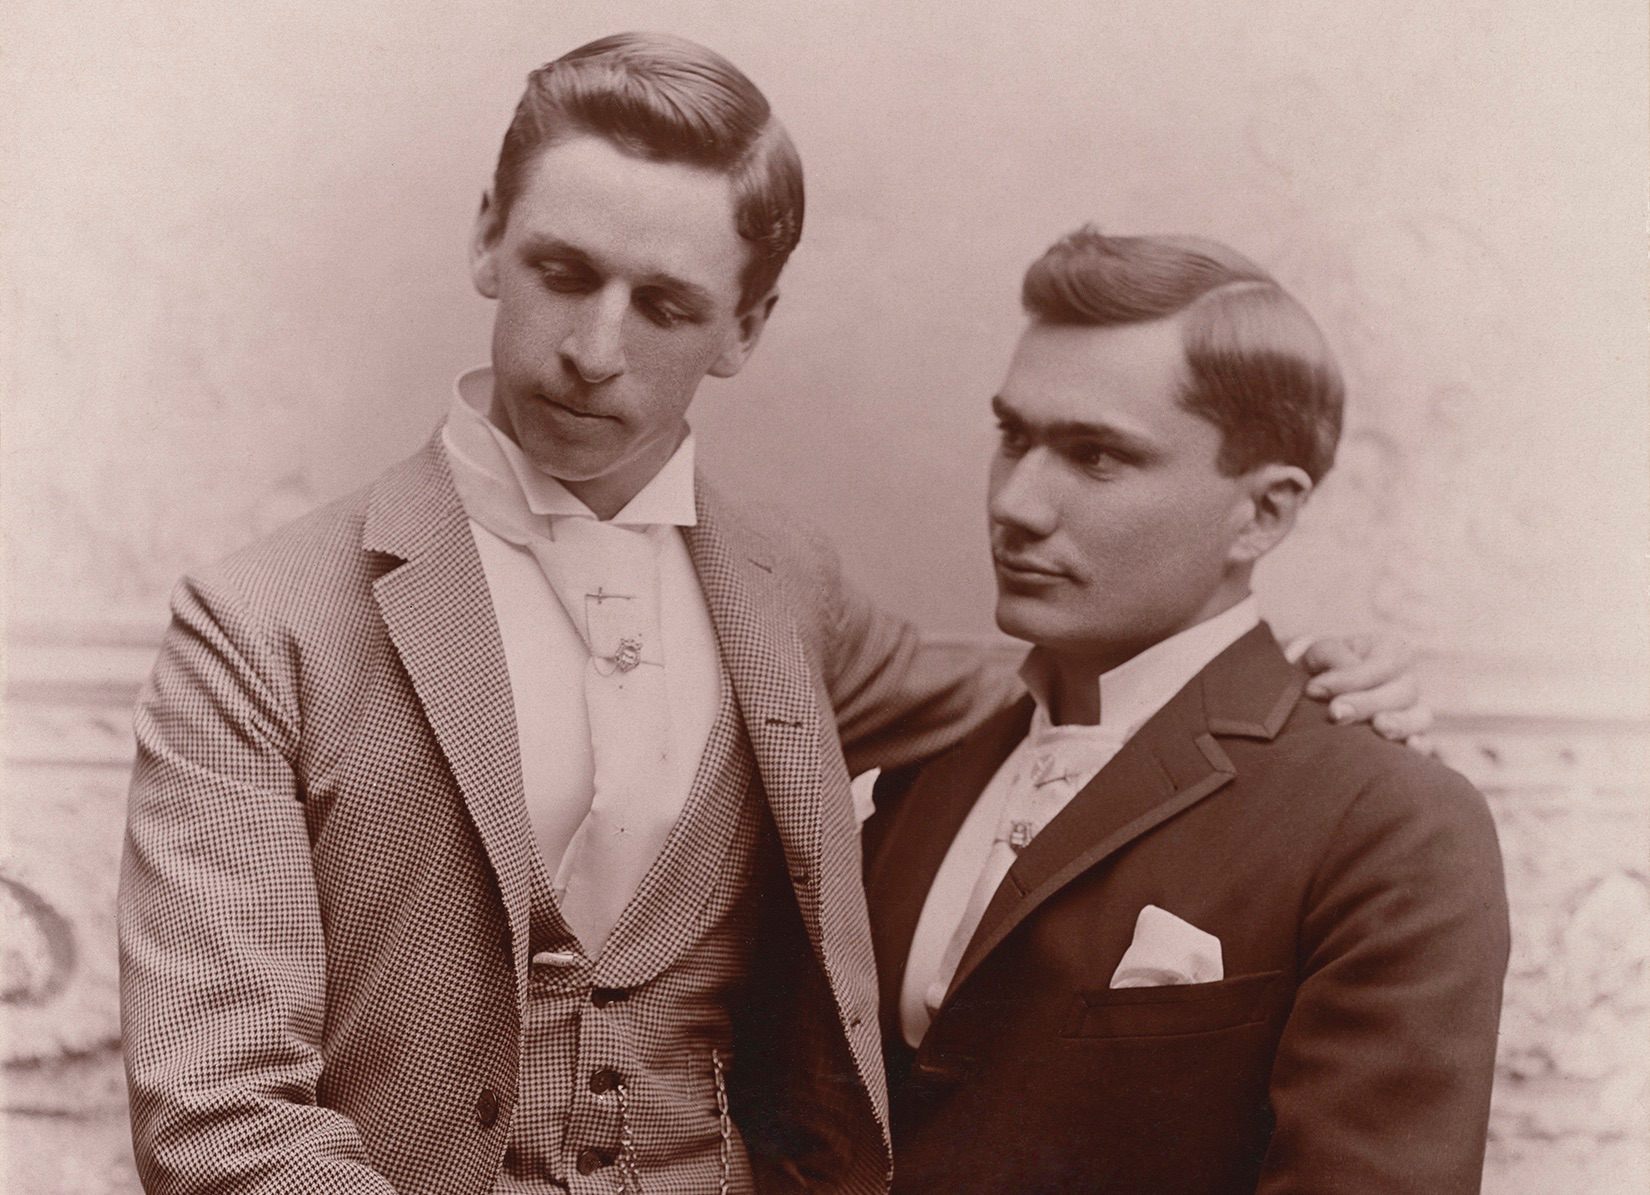 Two men pose in the late 1800s